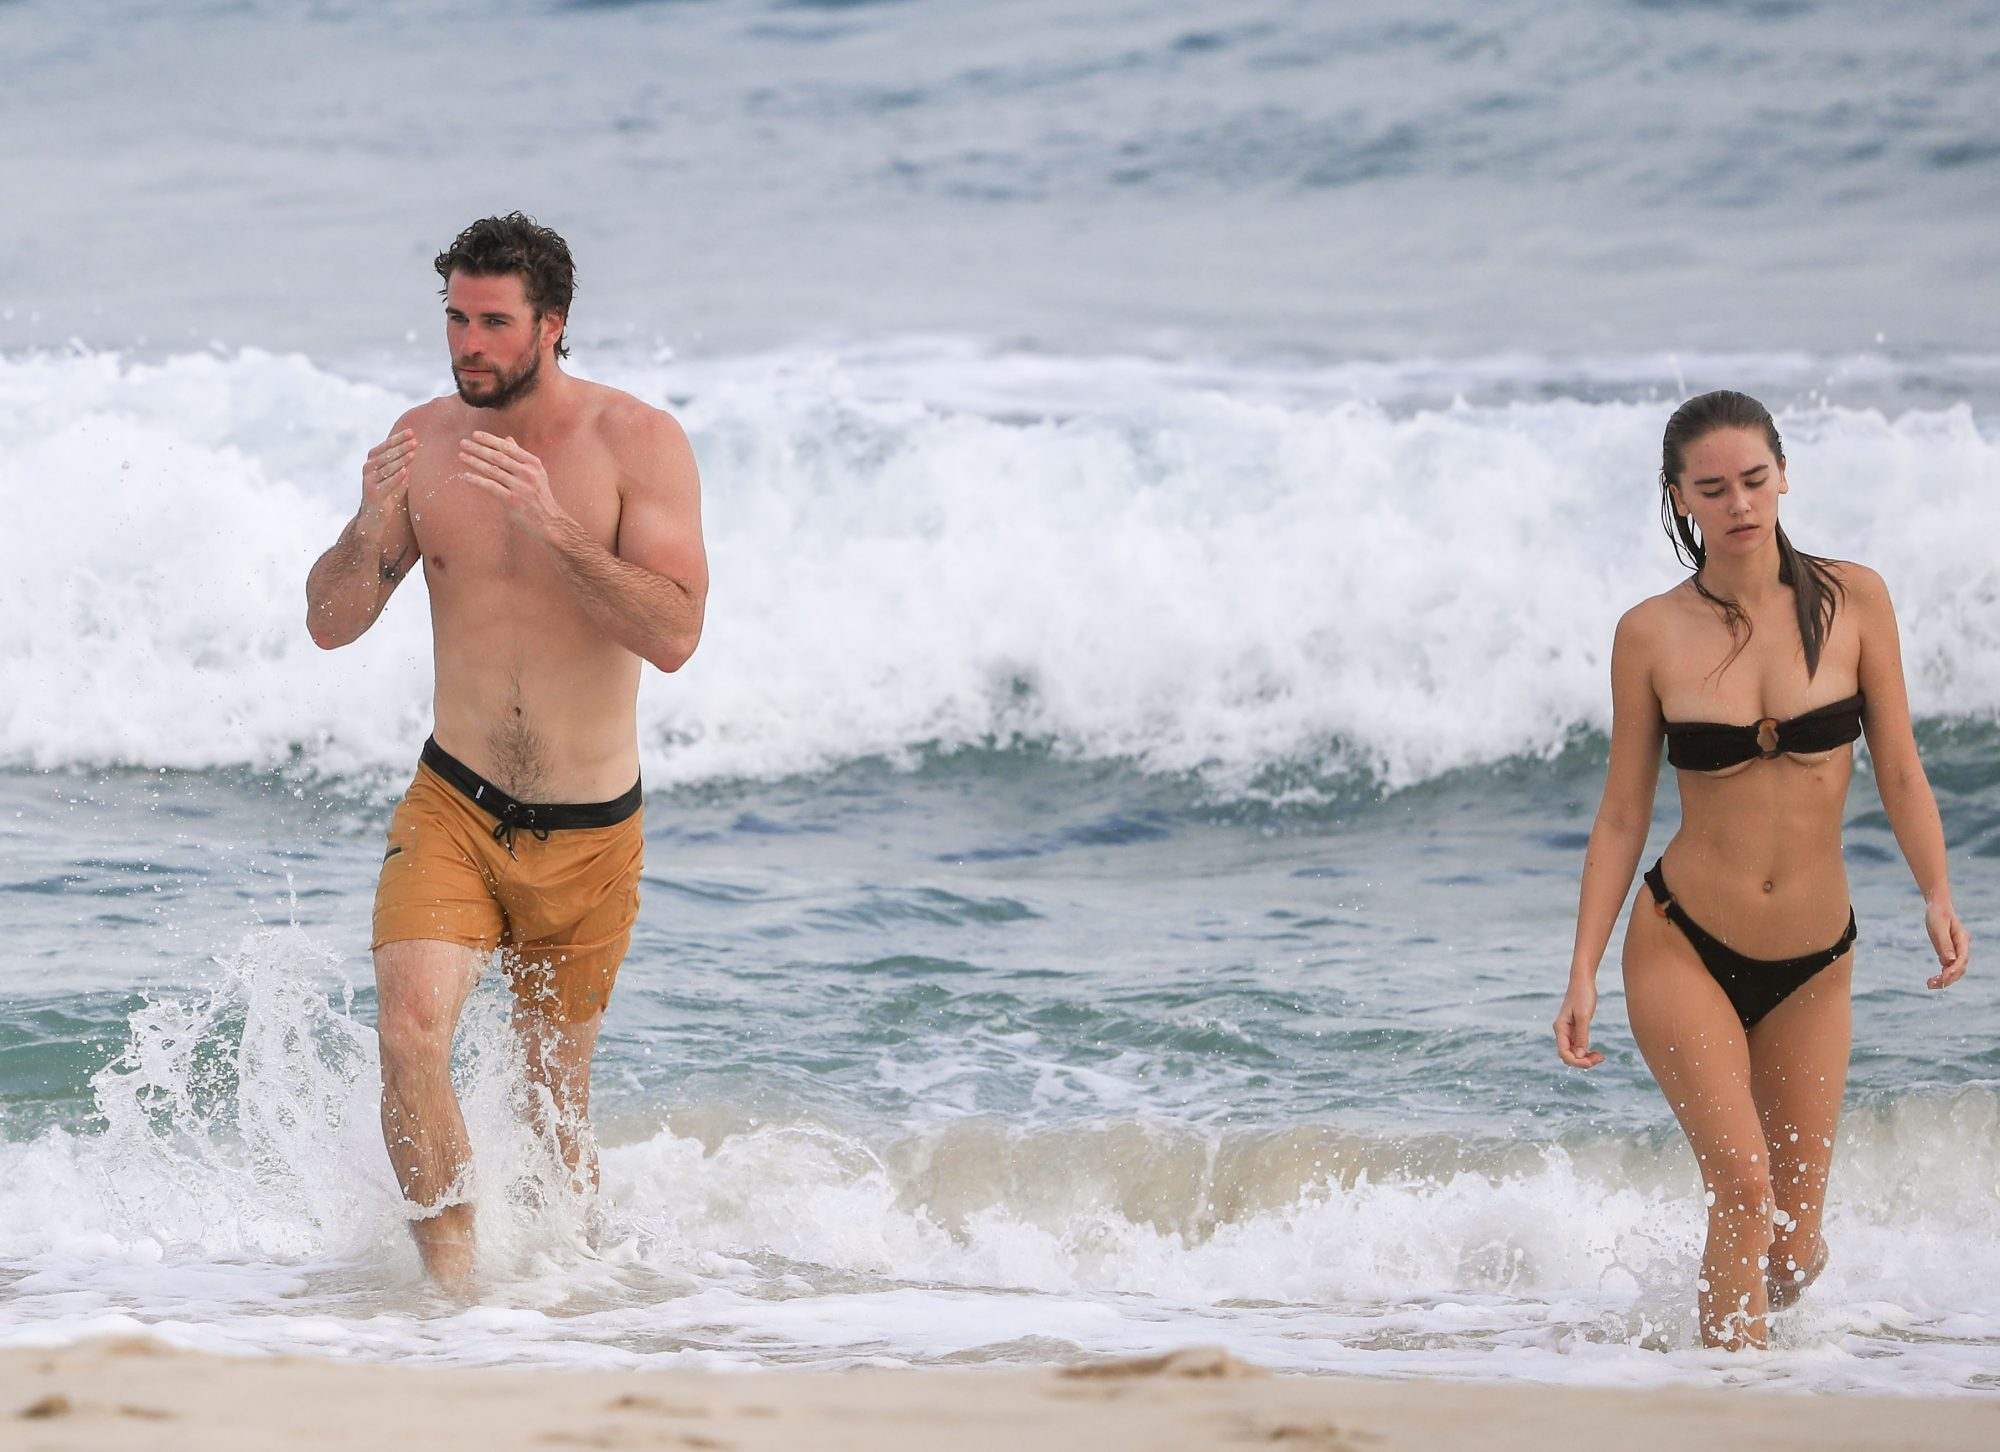 Liam Hemsworth playa con novia